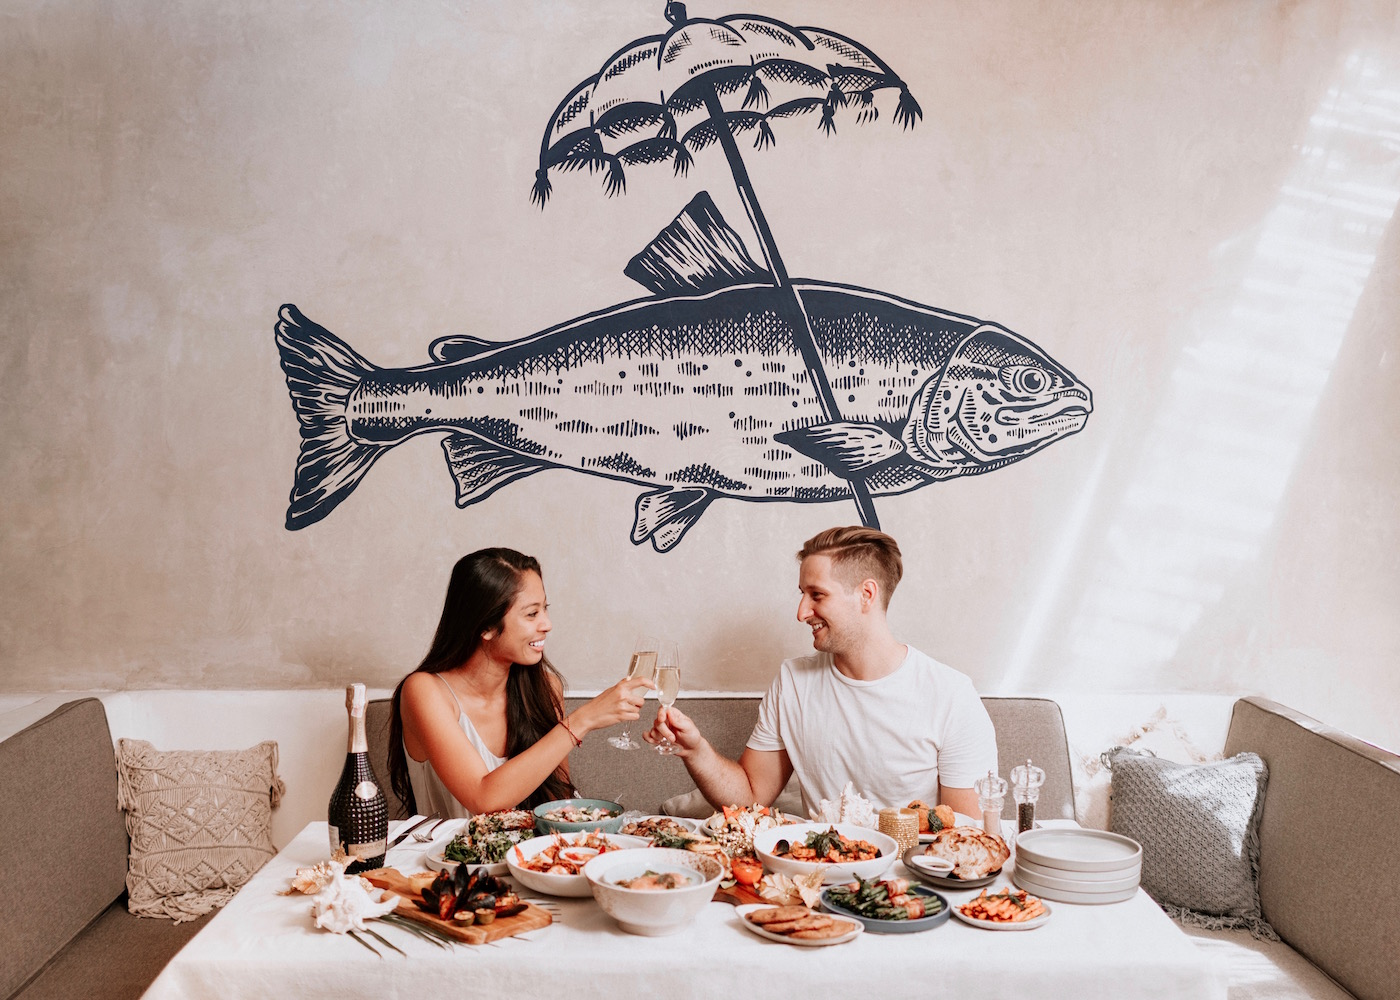 Feast on a seafood brunch spread at Hippie Fish